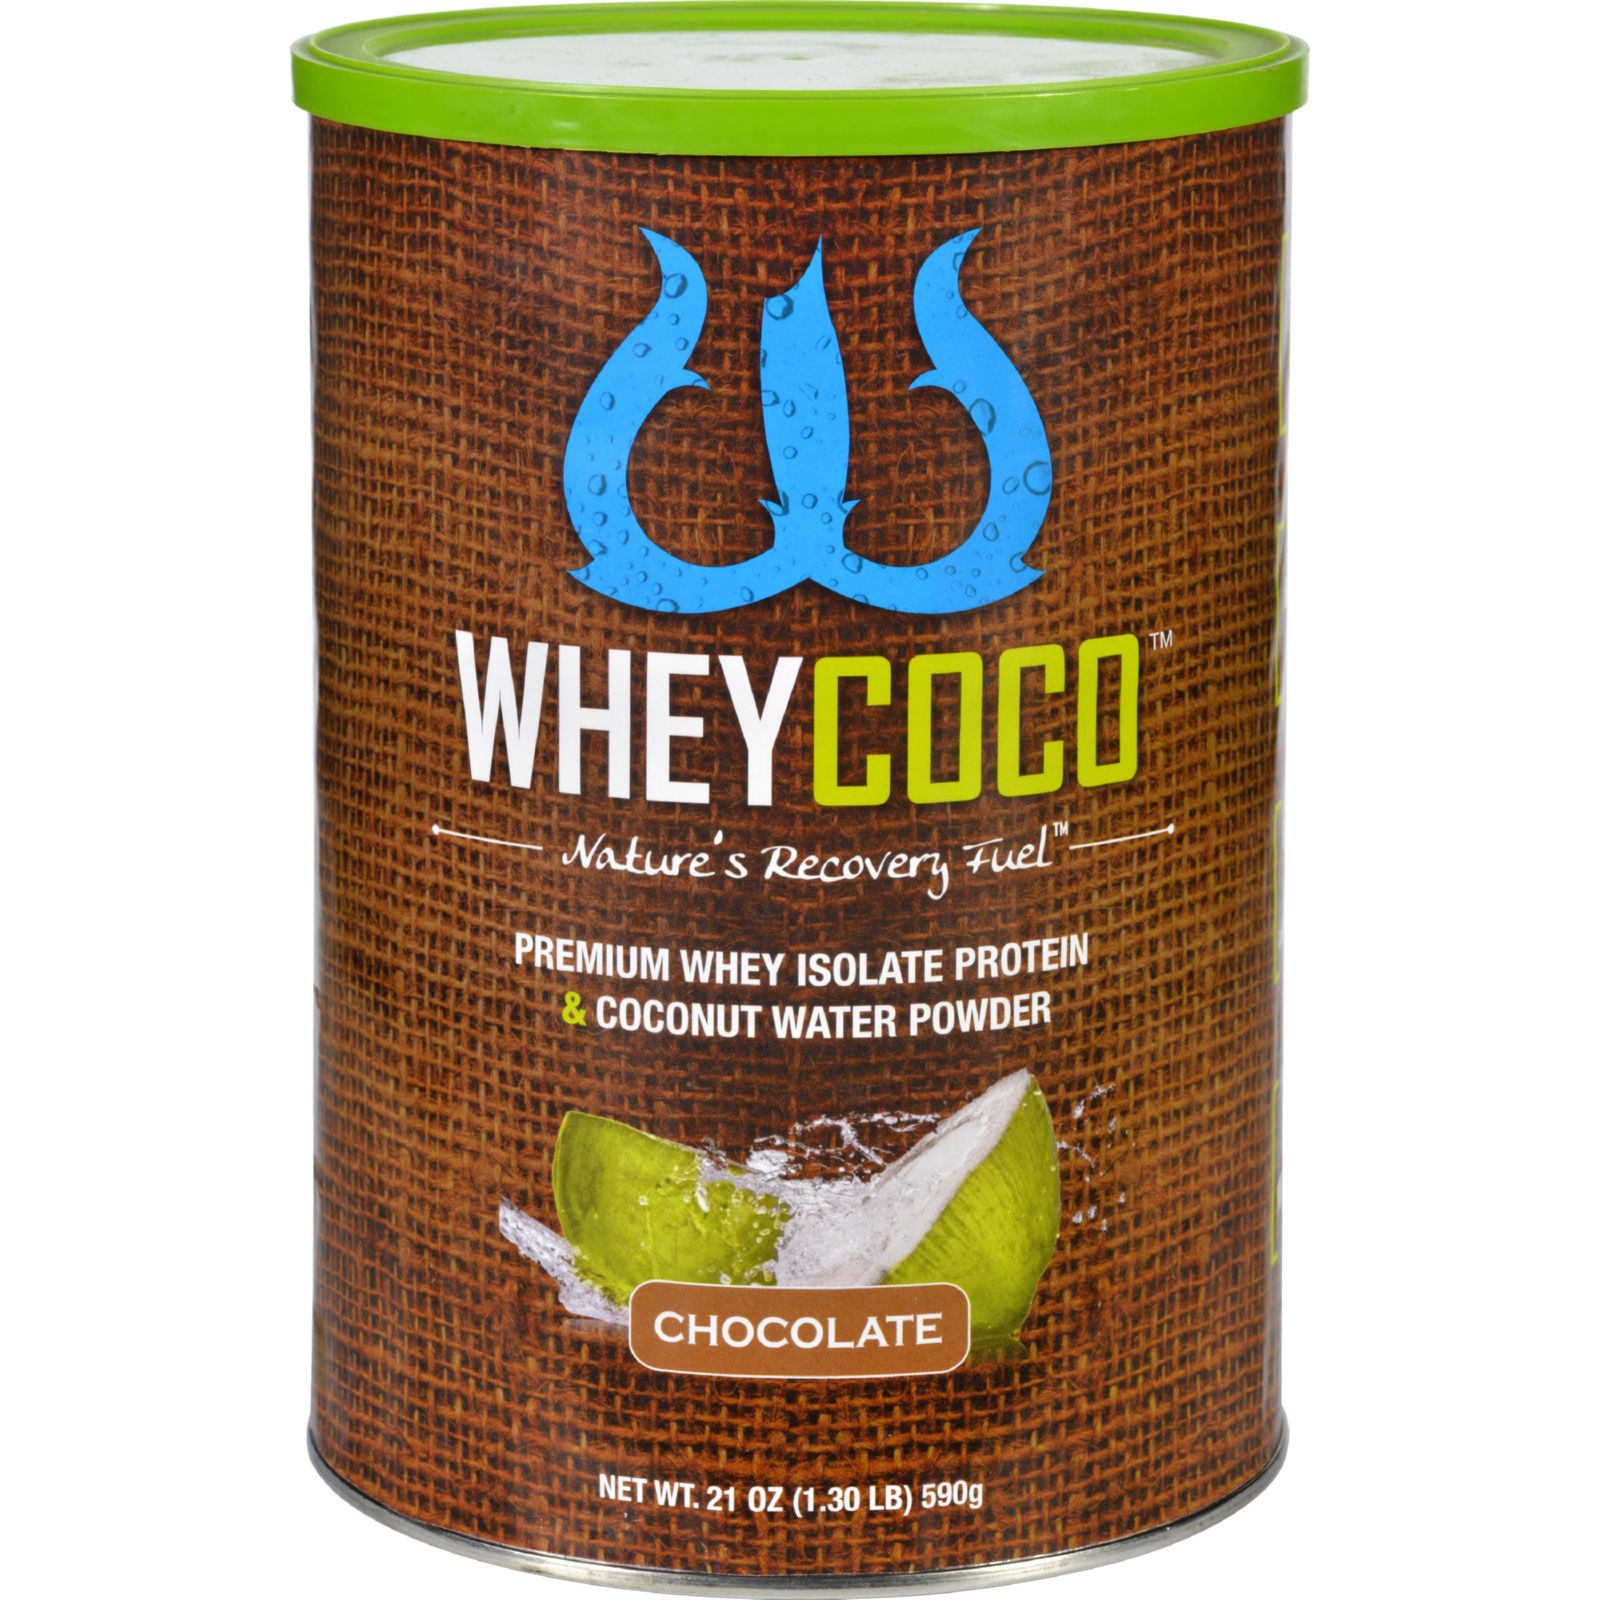 WheyCoco Whey Isolate Protein and Coconut Water - Premium - Powder - Chocolate - 21 oz